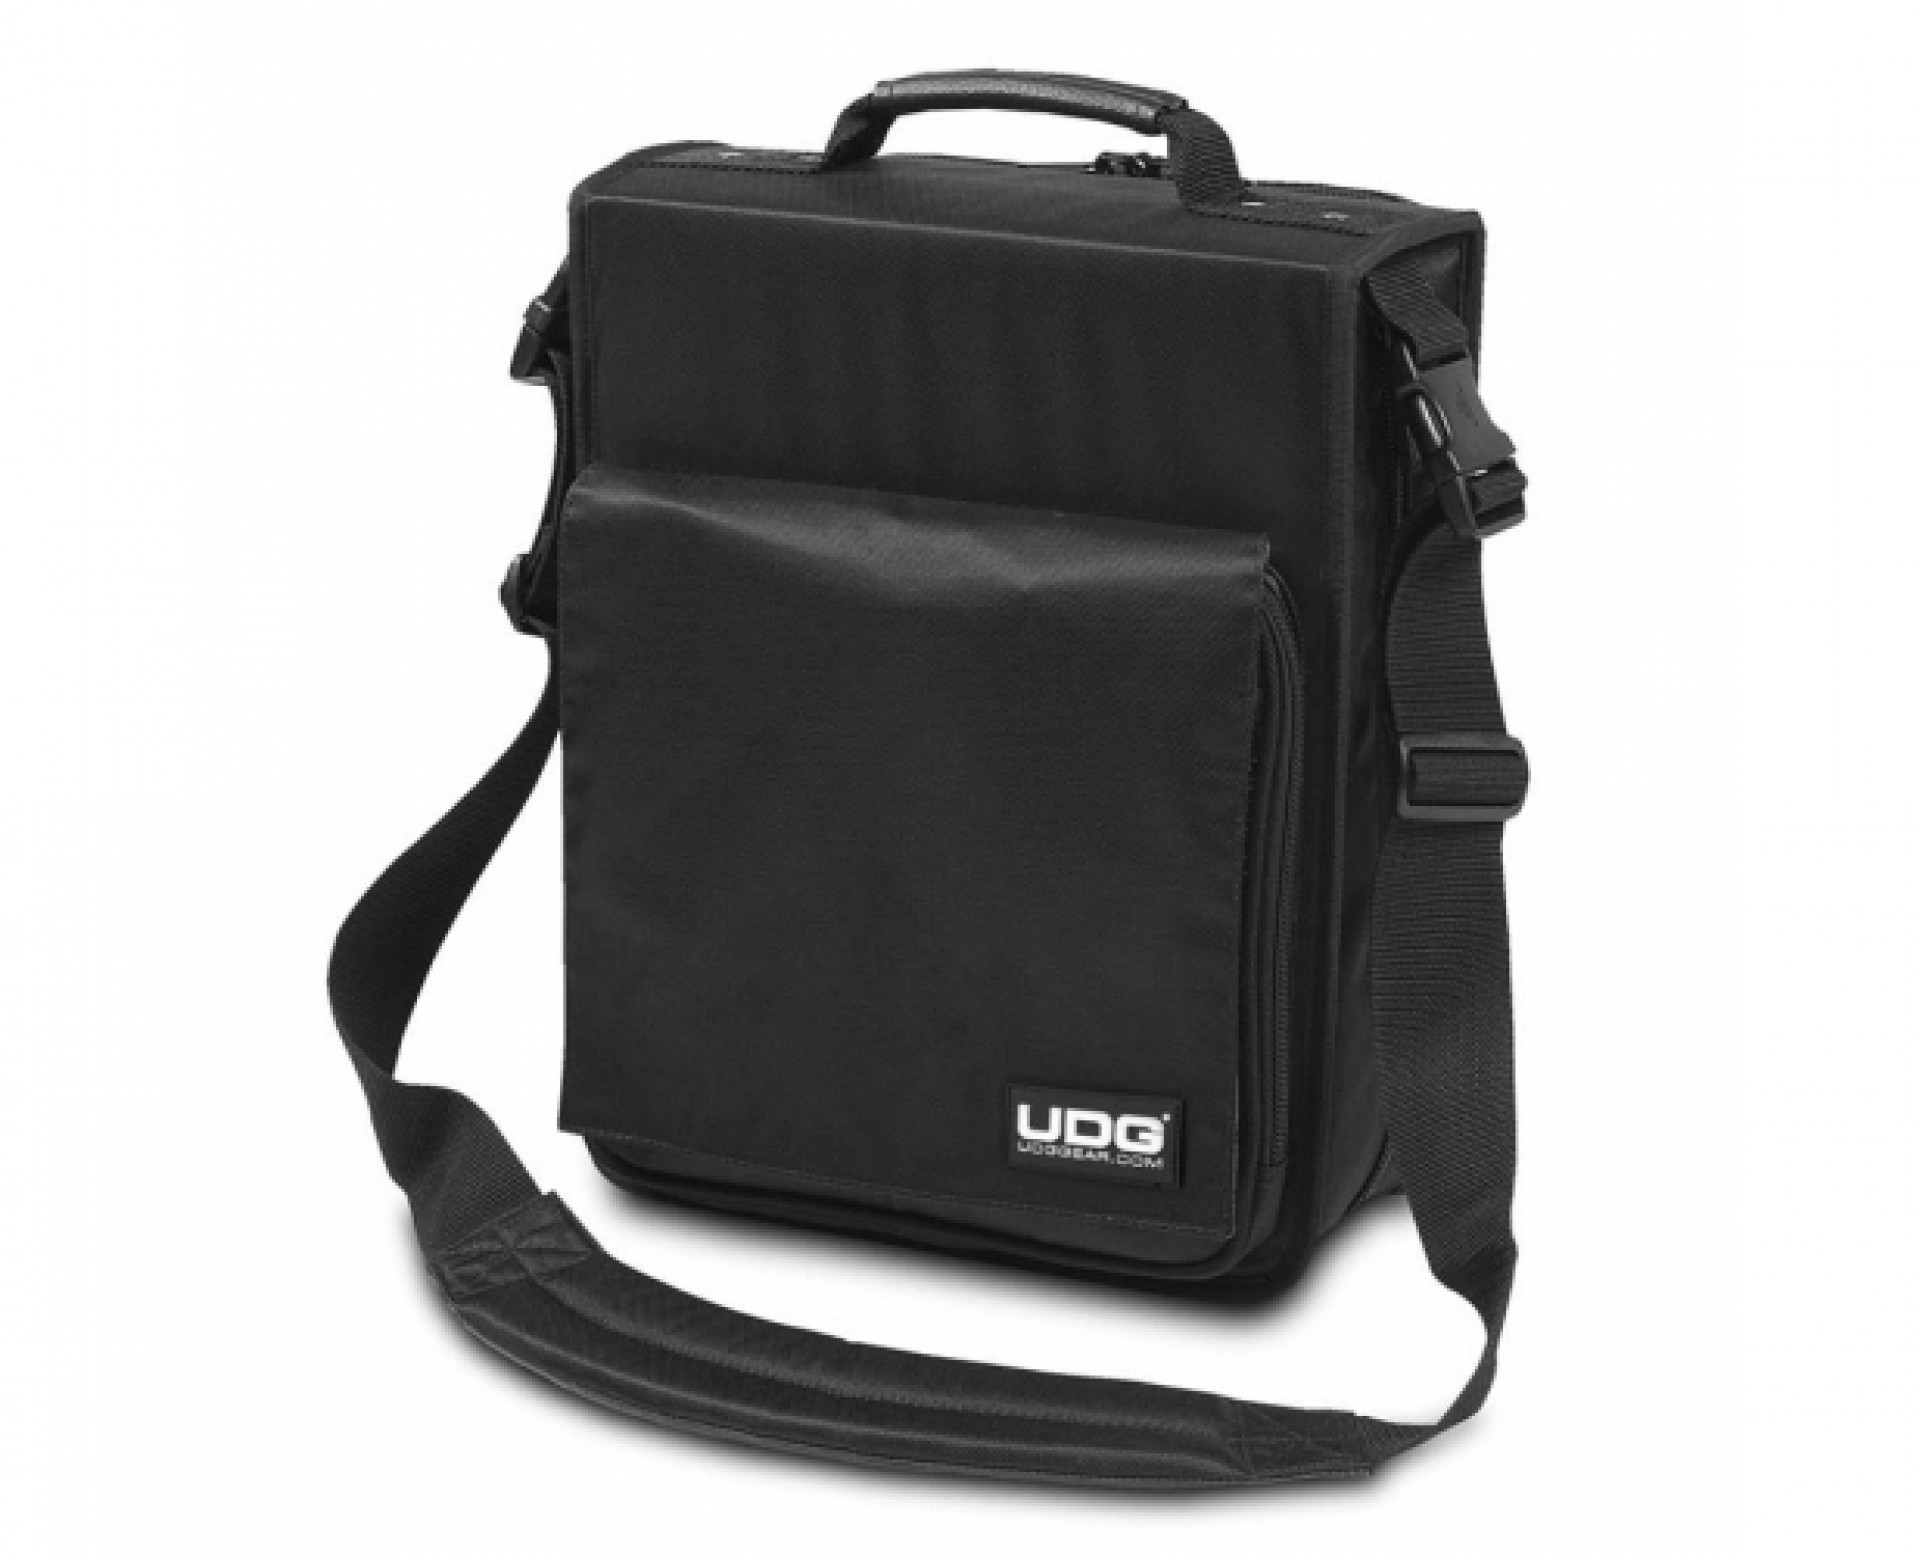 UDG CD SlingBag 258 Black/Orange inside